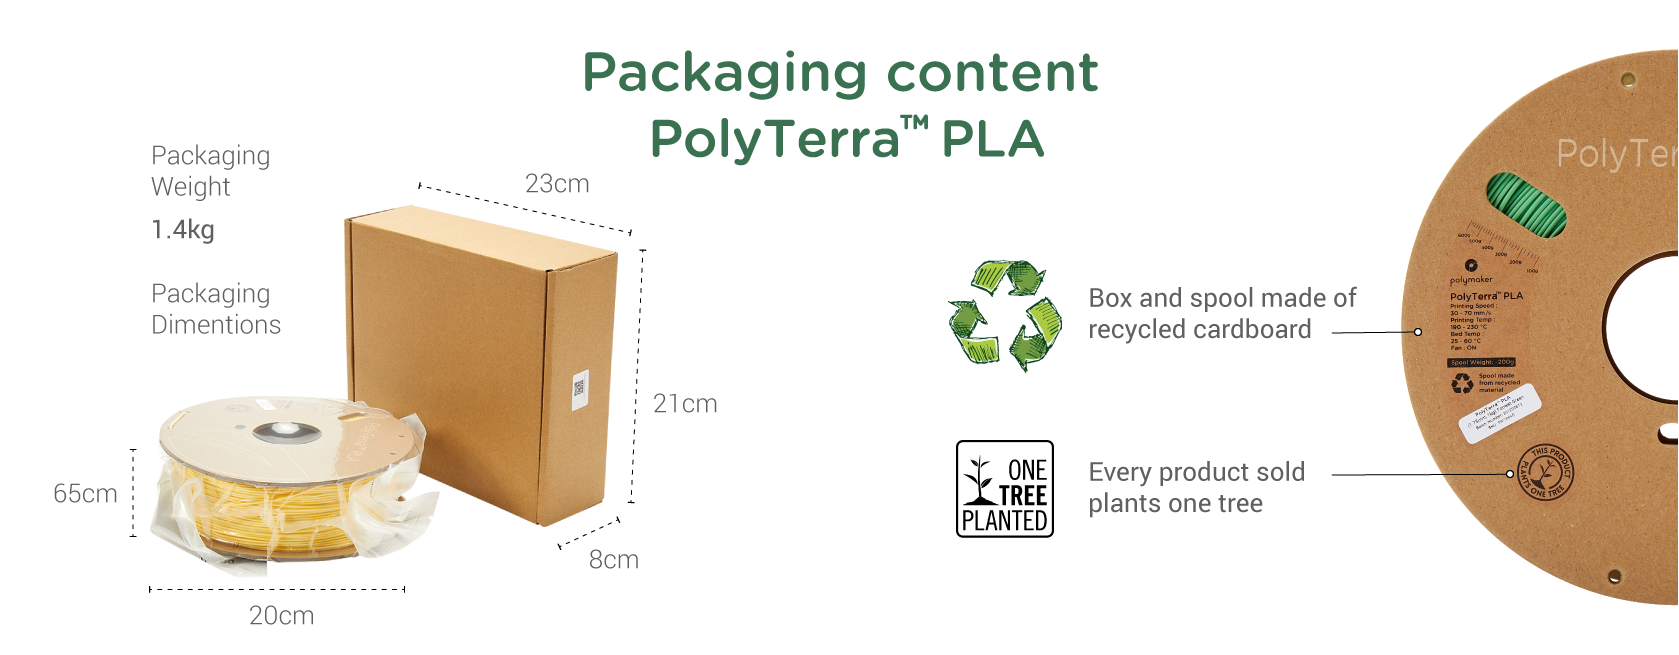 PolyTerra-Packaging-Content.png